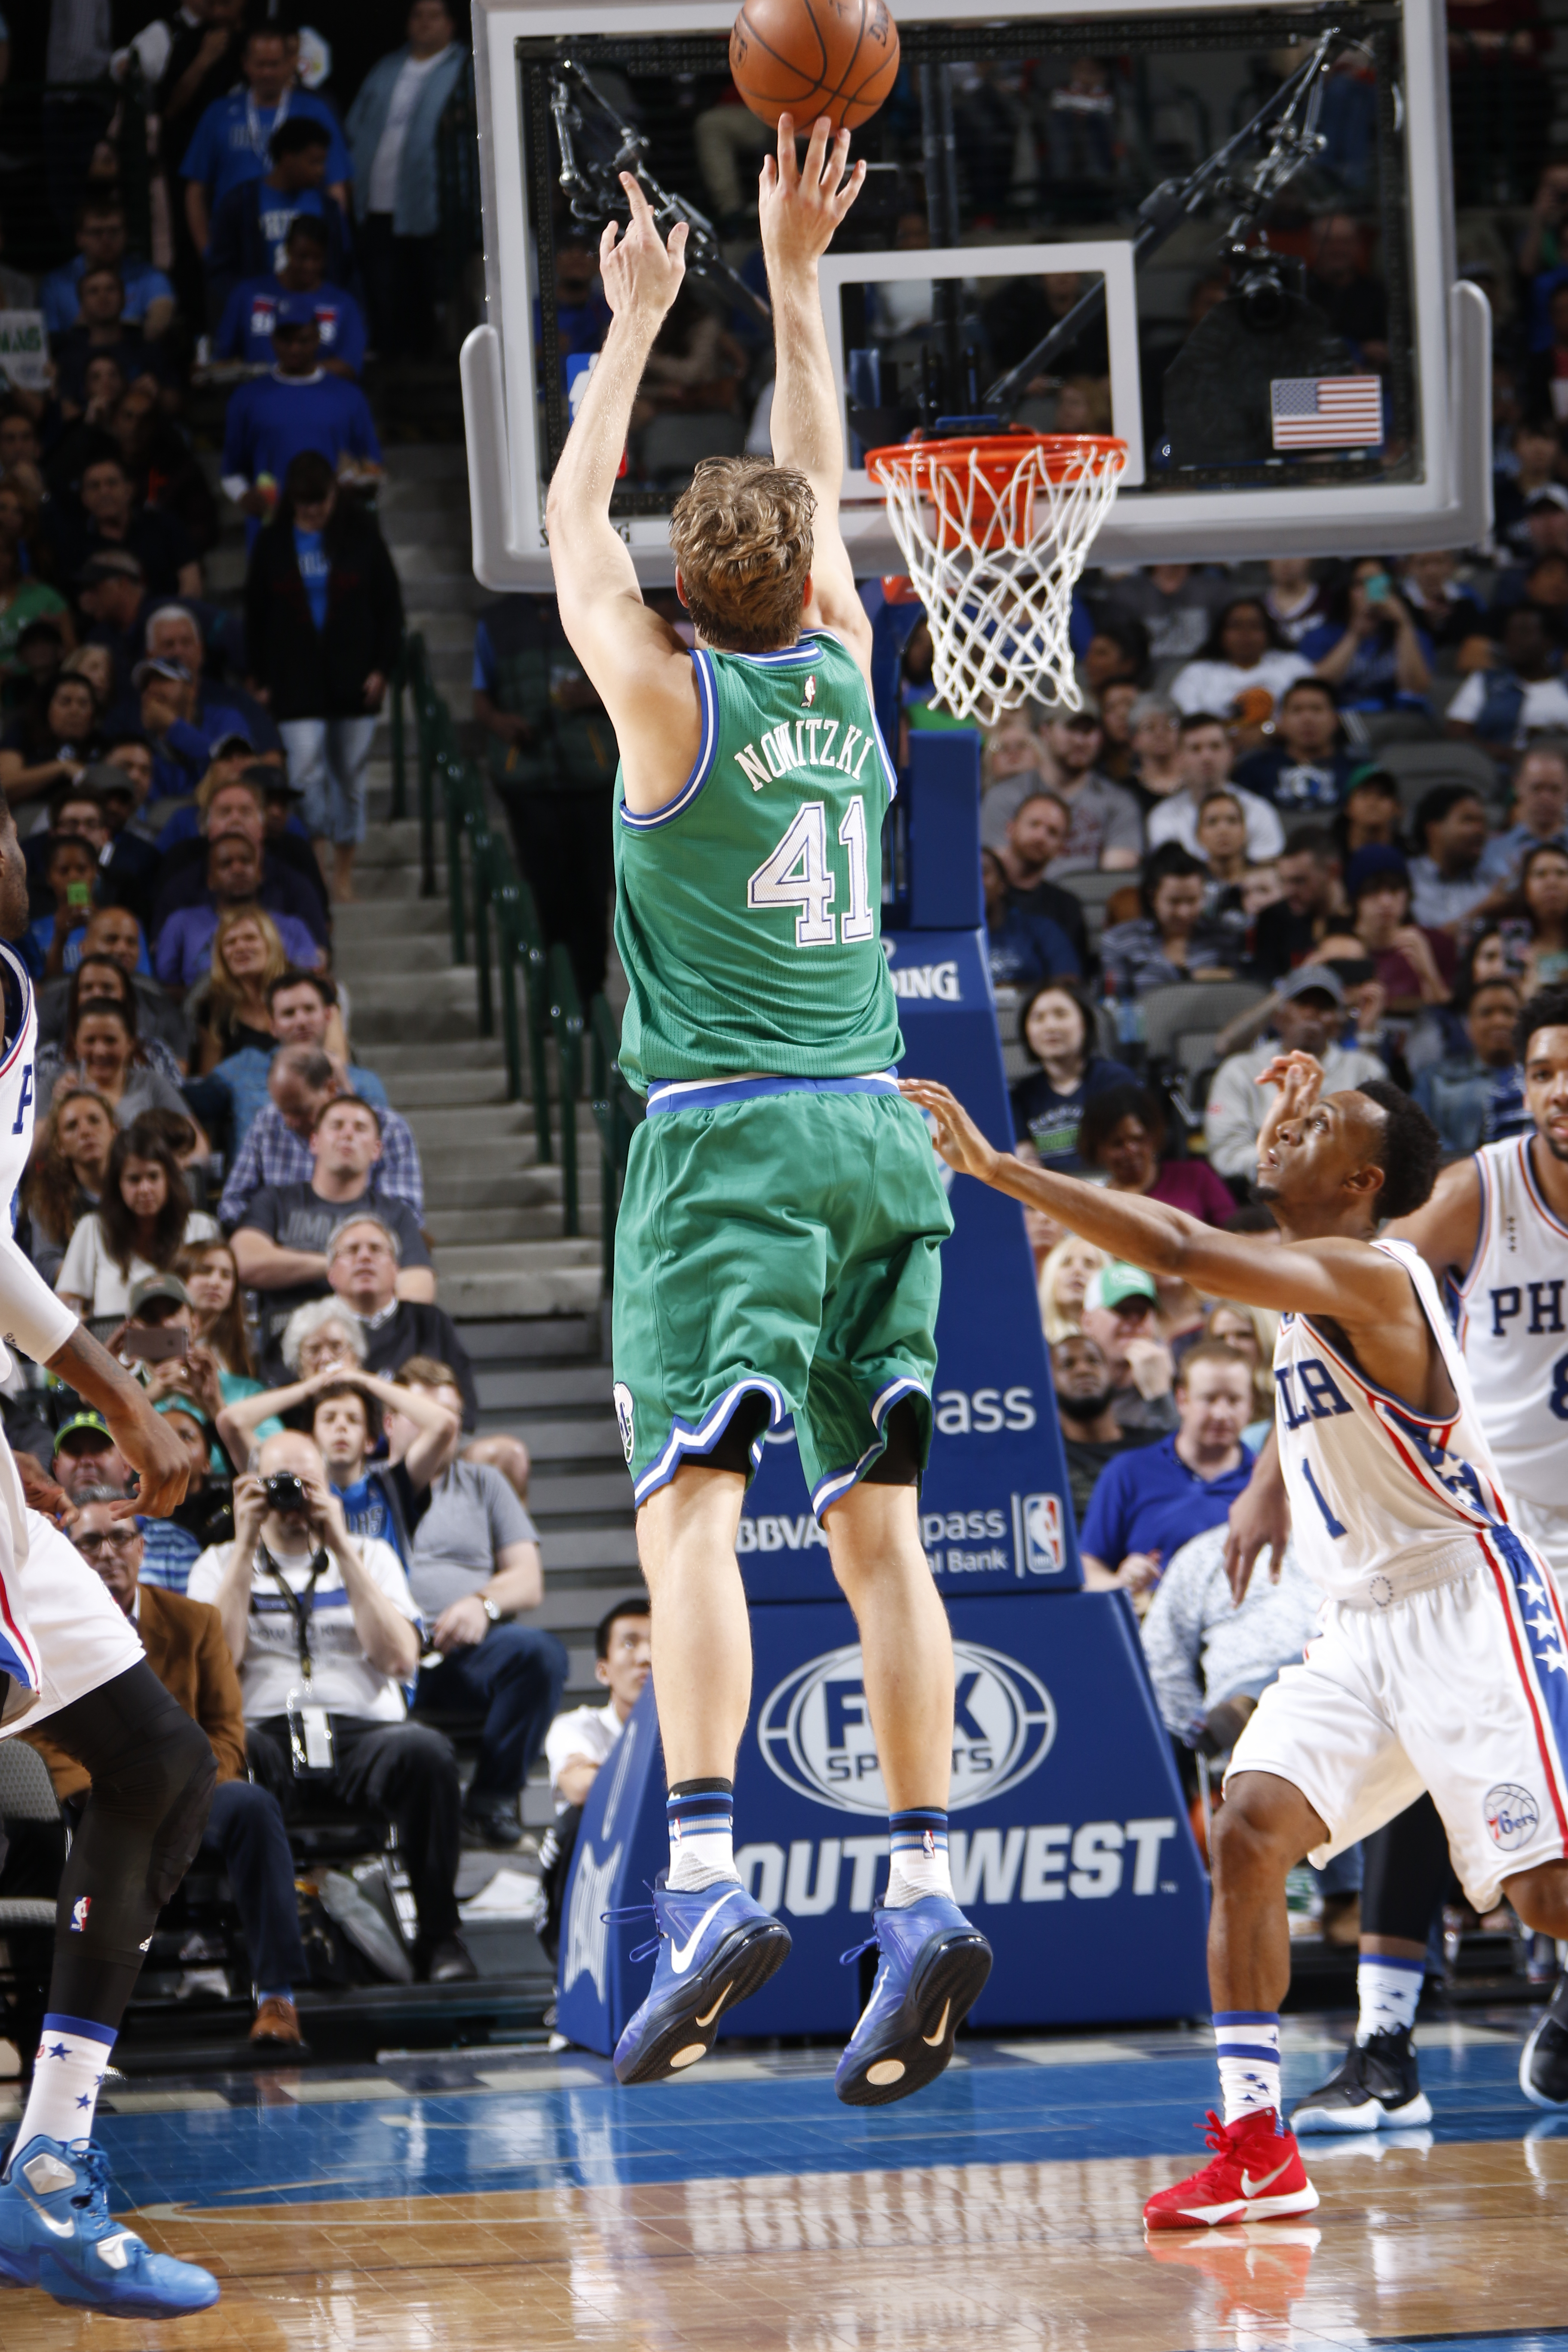 DALLAS, TX - FEBRUARY 21: Dirk Nowitzki #41 of the Dallas Mavericks shoots a jumper, moving him above 29,000 points for his career against the Philadelphia 76ers on February 21, 2016 at the American Airlines Center in Dallas, Texas. (Photo by Glenn James/